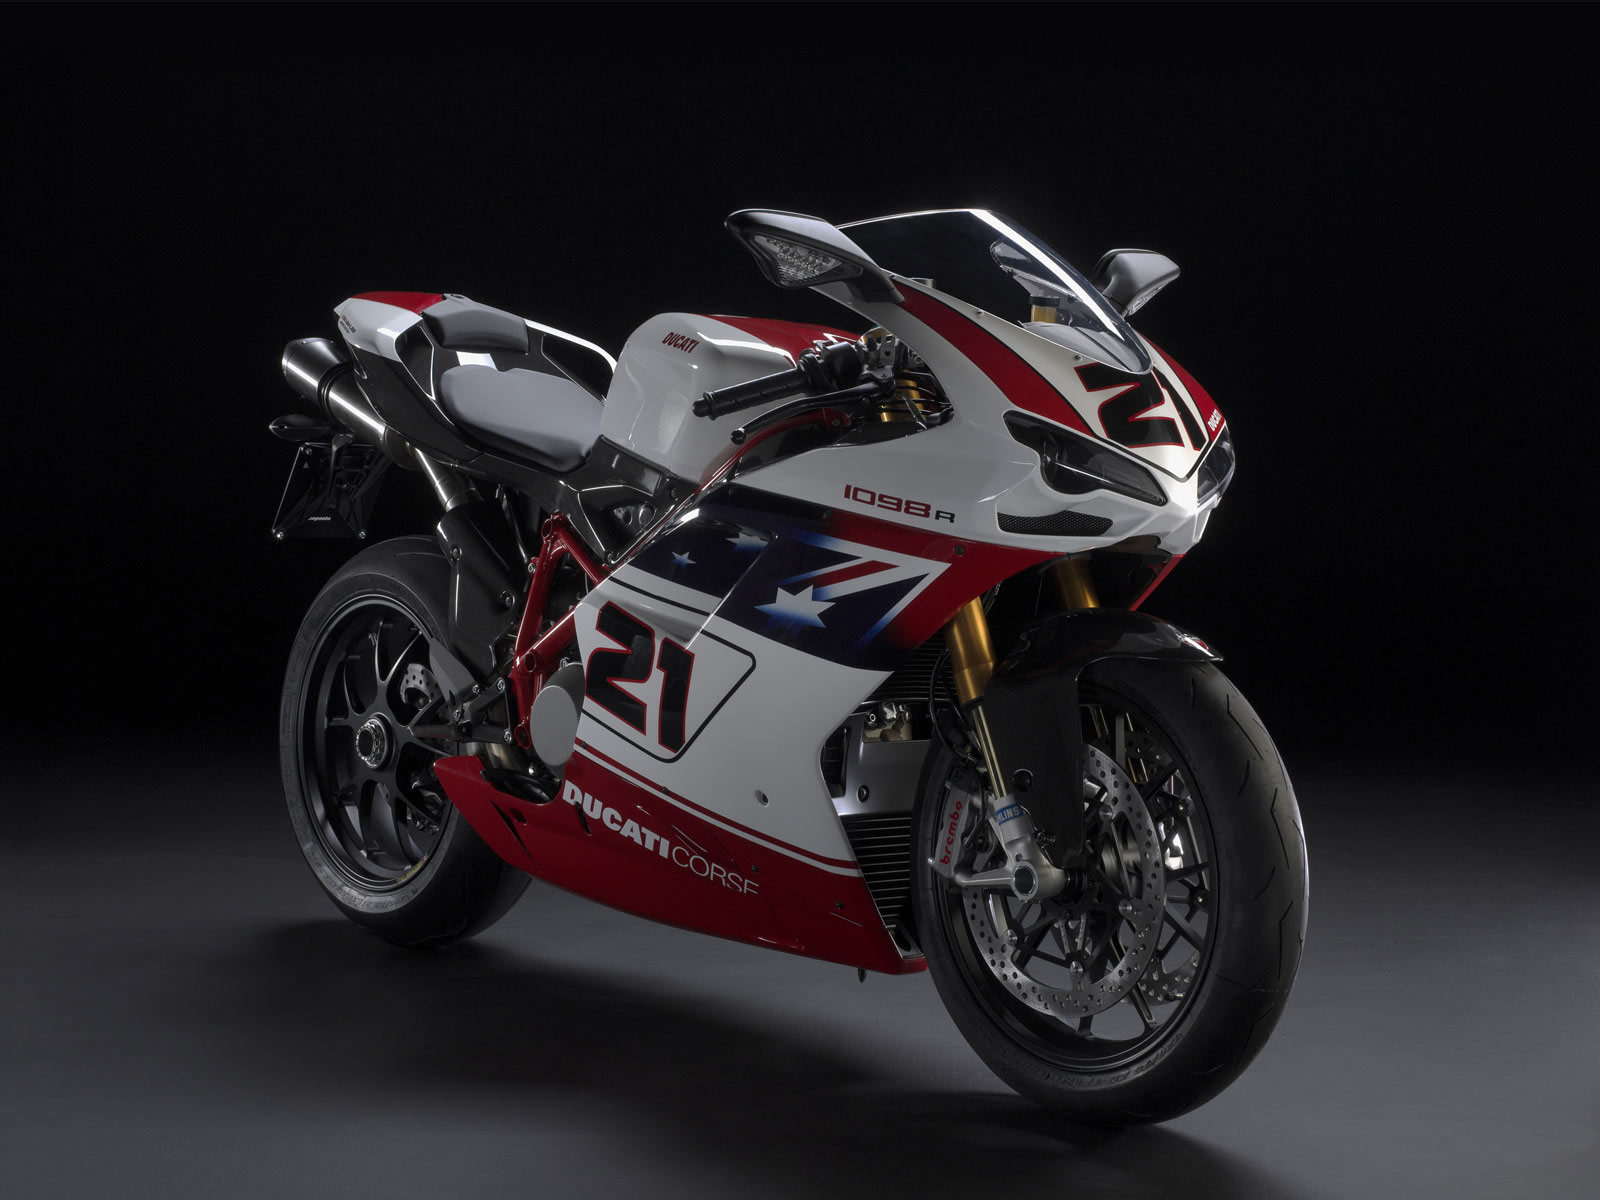 Ducati Superbike 1098 R Bayliss Limited Edition 2009 wallpapers #12443